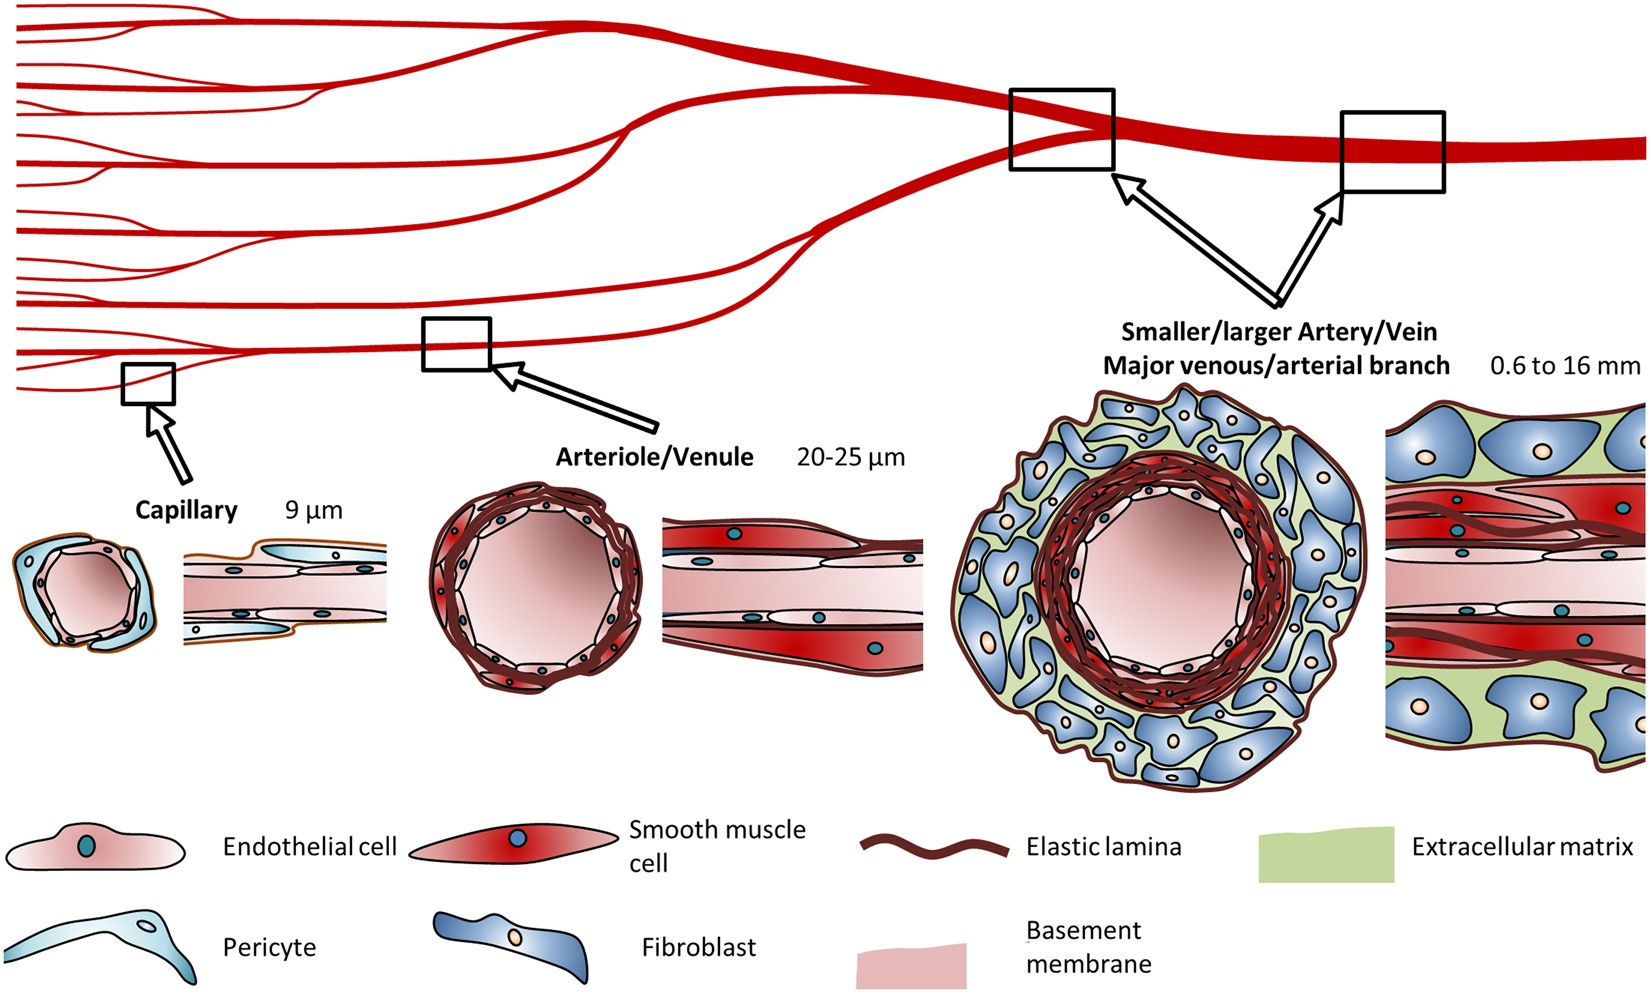 Engineering Biofunctional In Vitro Vessel Models Using A Multilayer Scytek Schematic Bioprinting Technique Scientific Reports